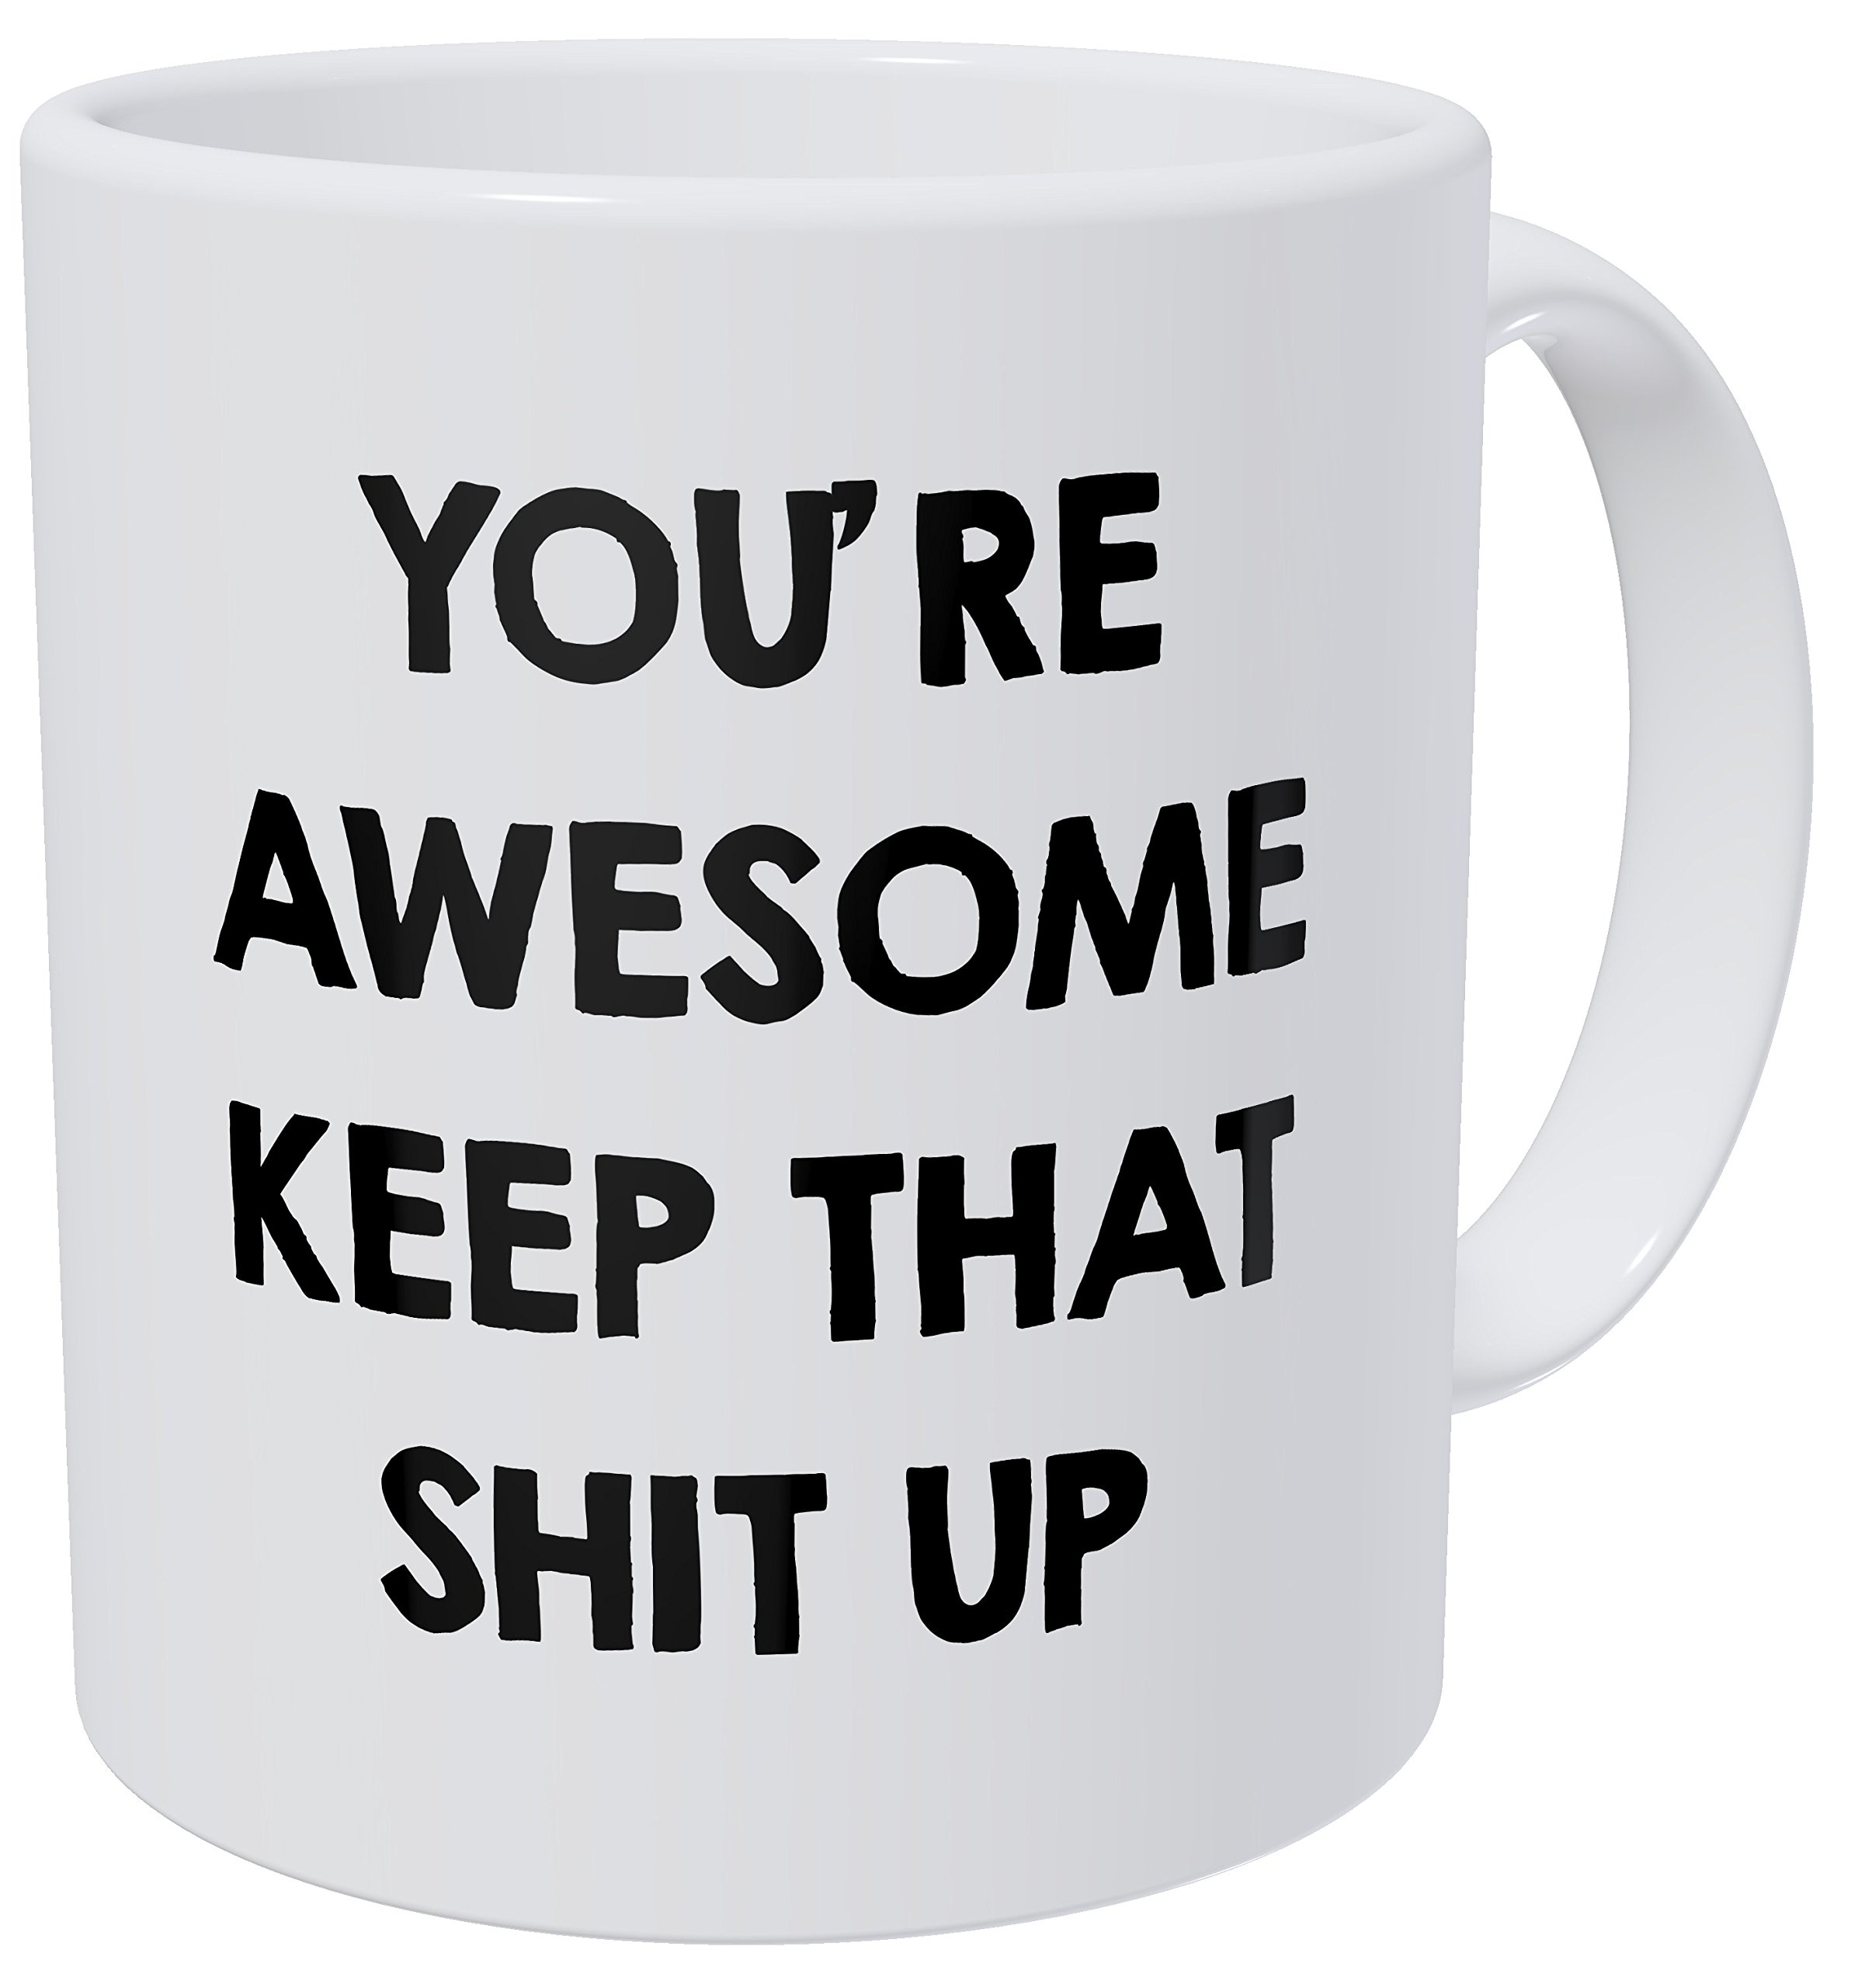 You're Awesome Keep That Shit Up 11OZ Funny Coffee Mug - By Willcallyou.